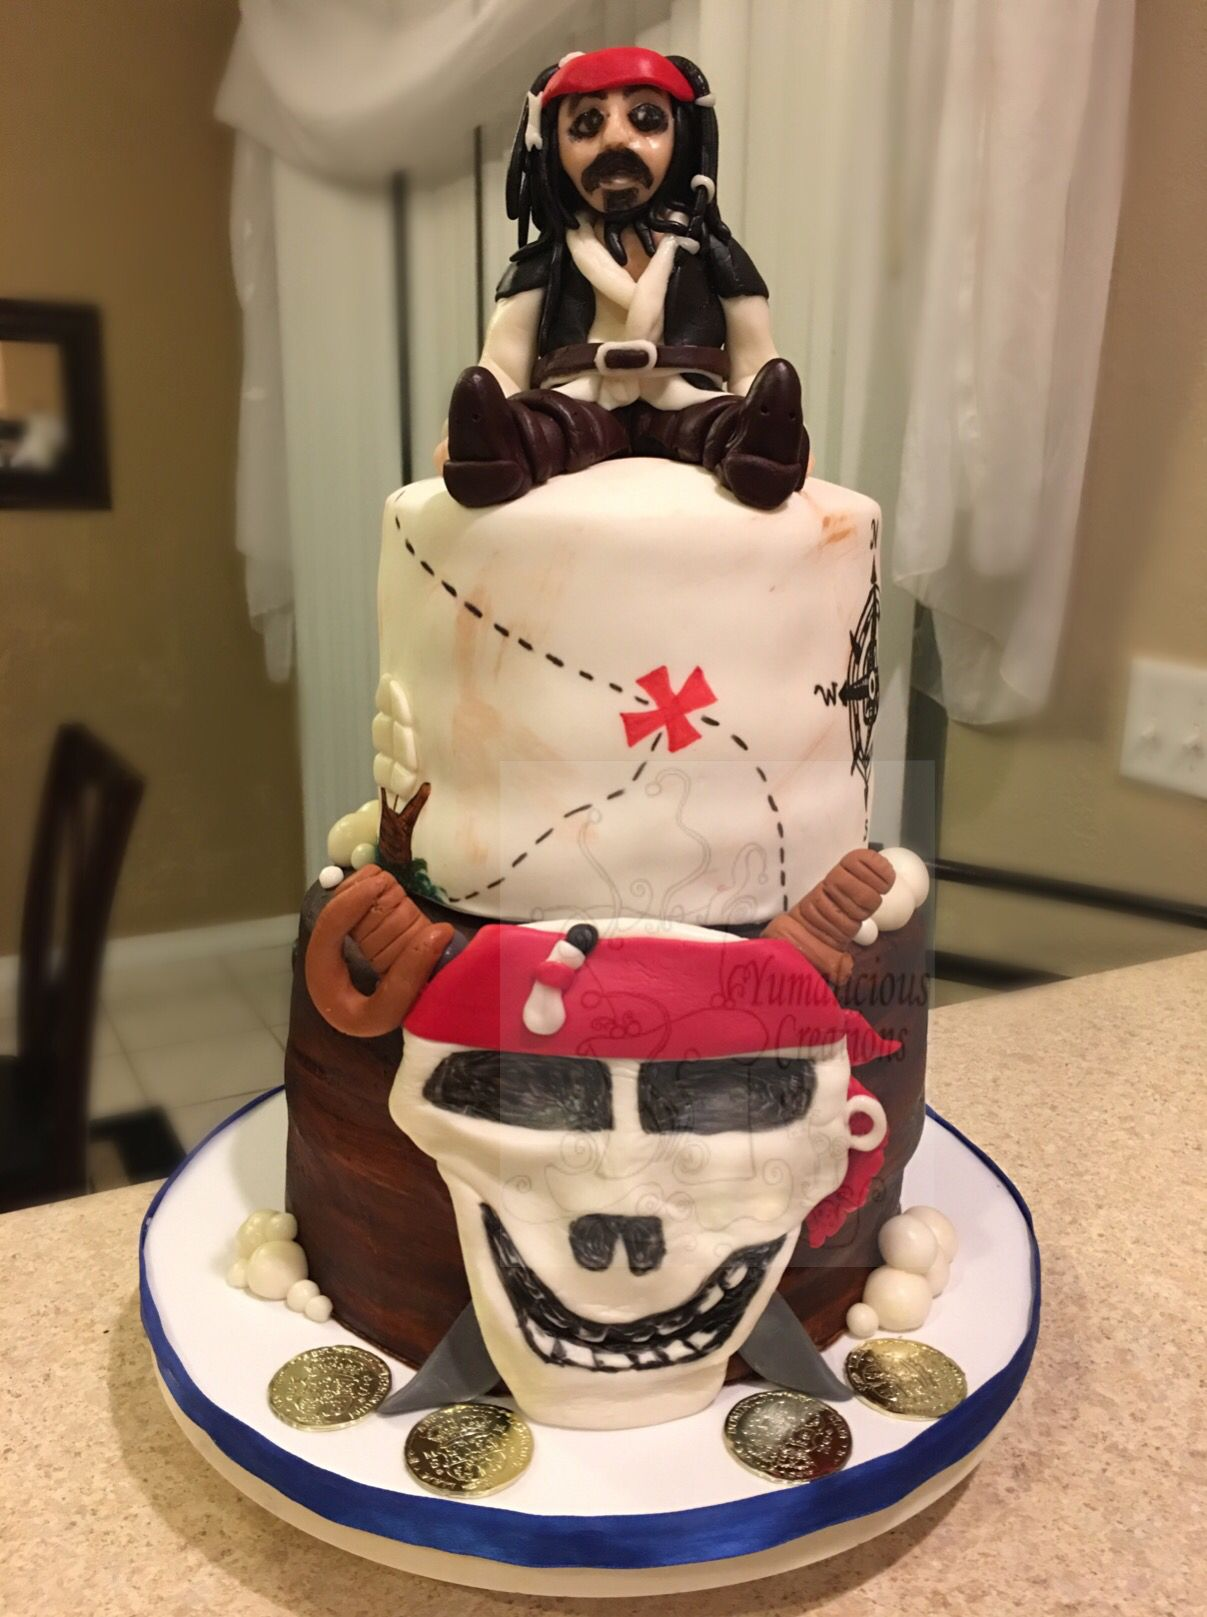 Pirates Of The Caribbean Cake With Chocolate Jack Sparrow Up Top